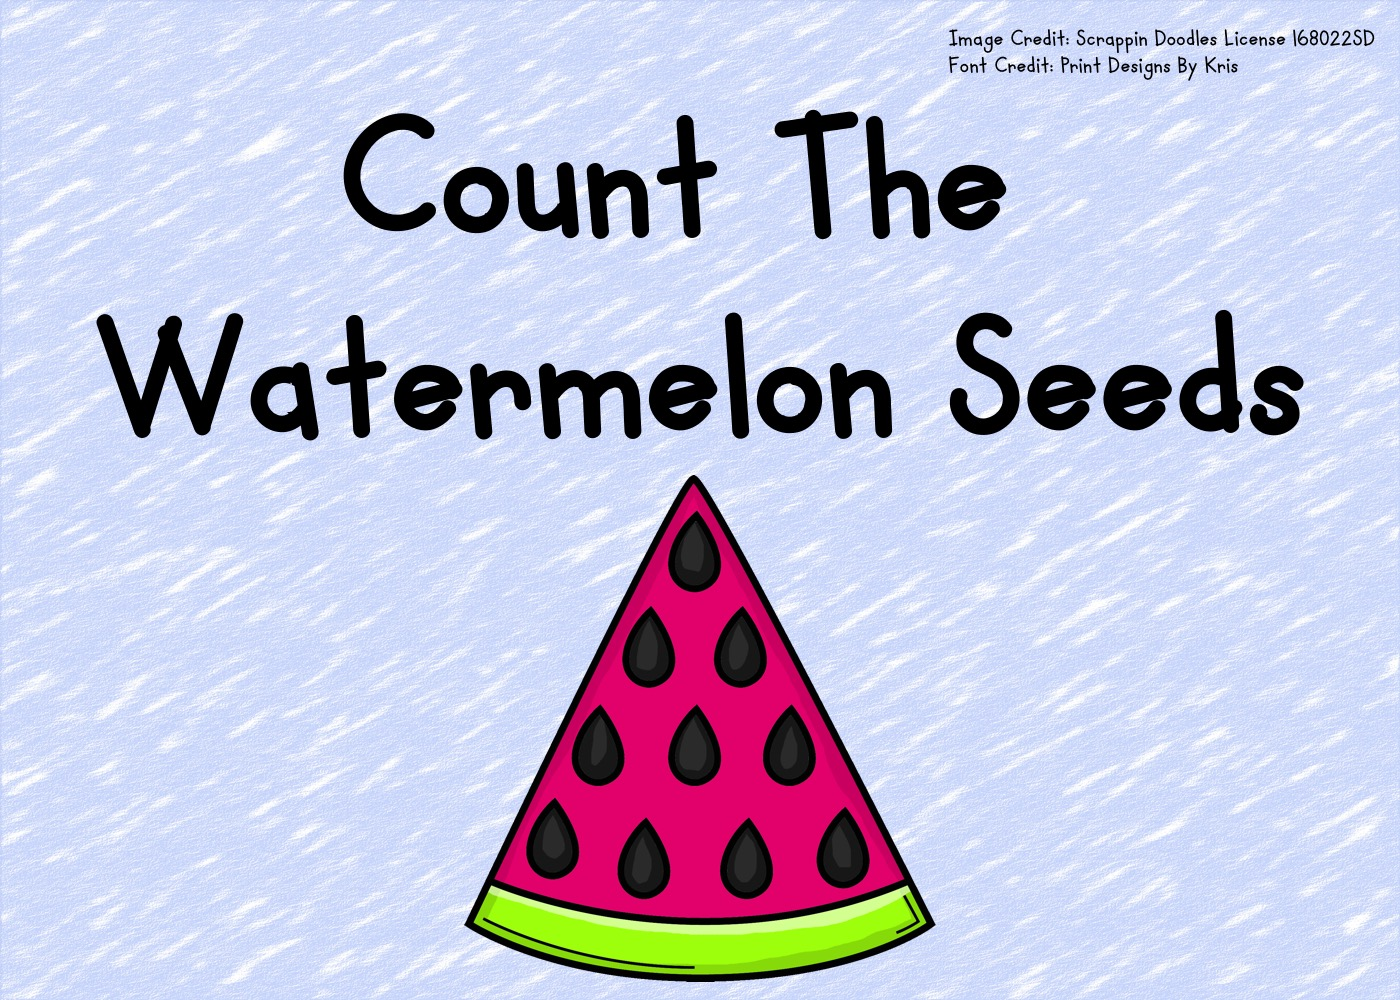 Count The Watermelon Seeds 1-10